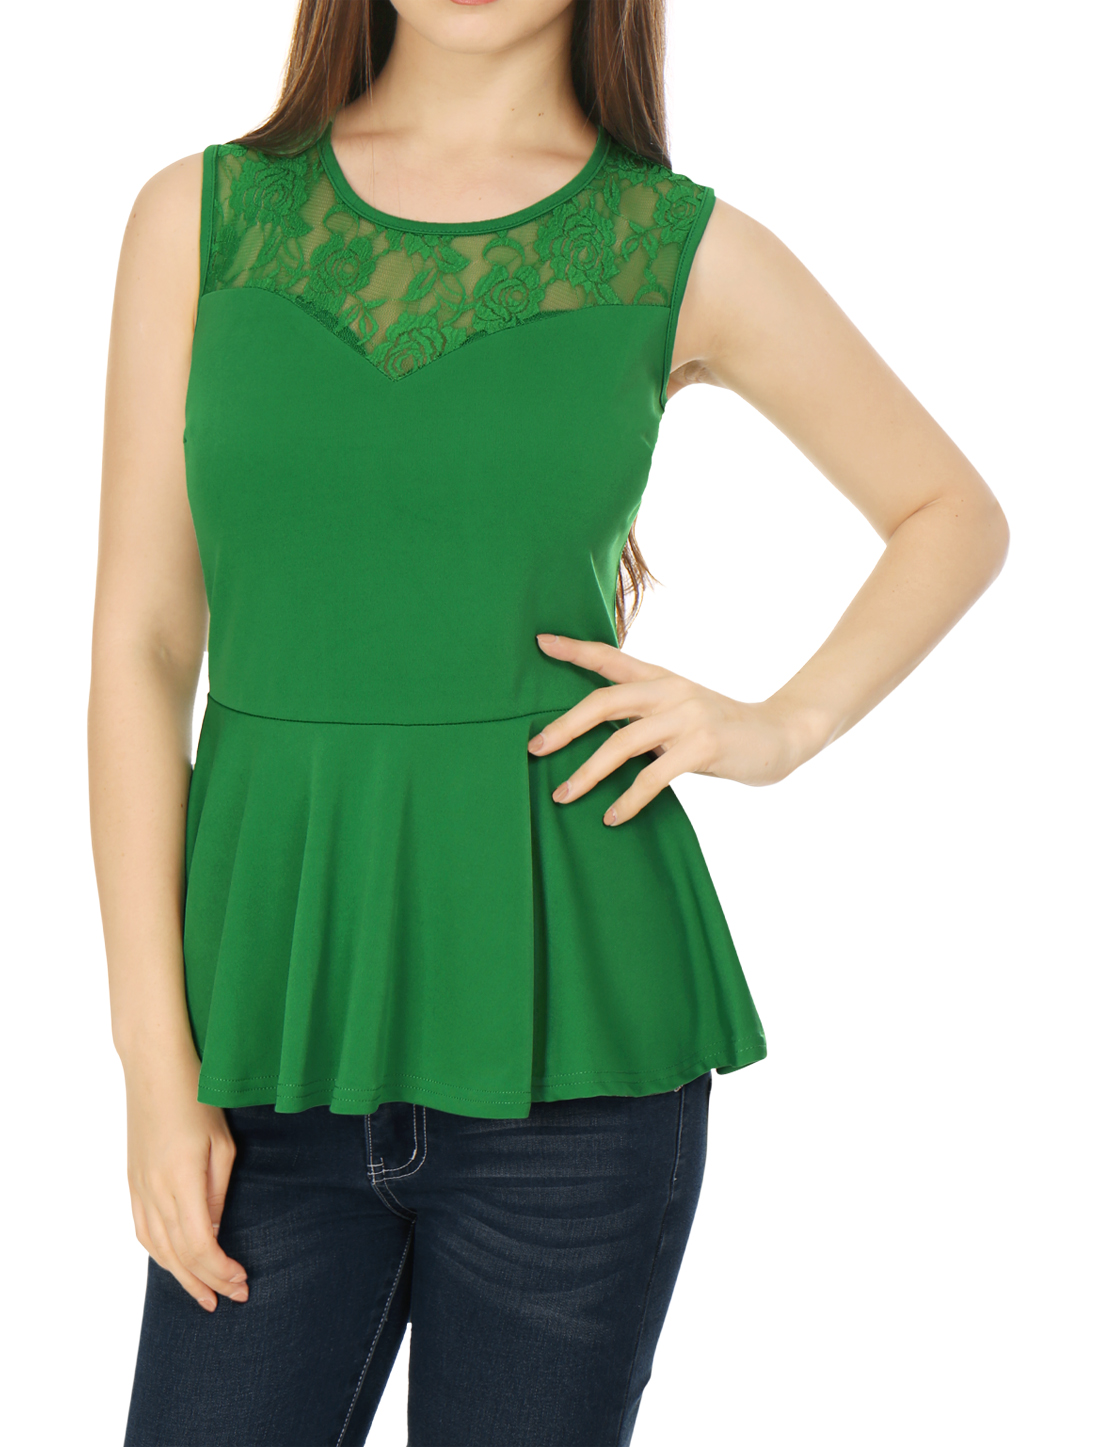 Women Round Neck Lace-Paneled Sleeveless Peplum Top Green L